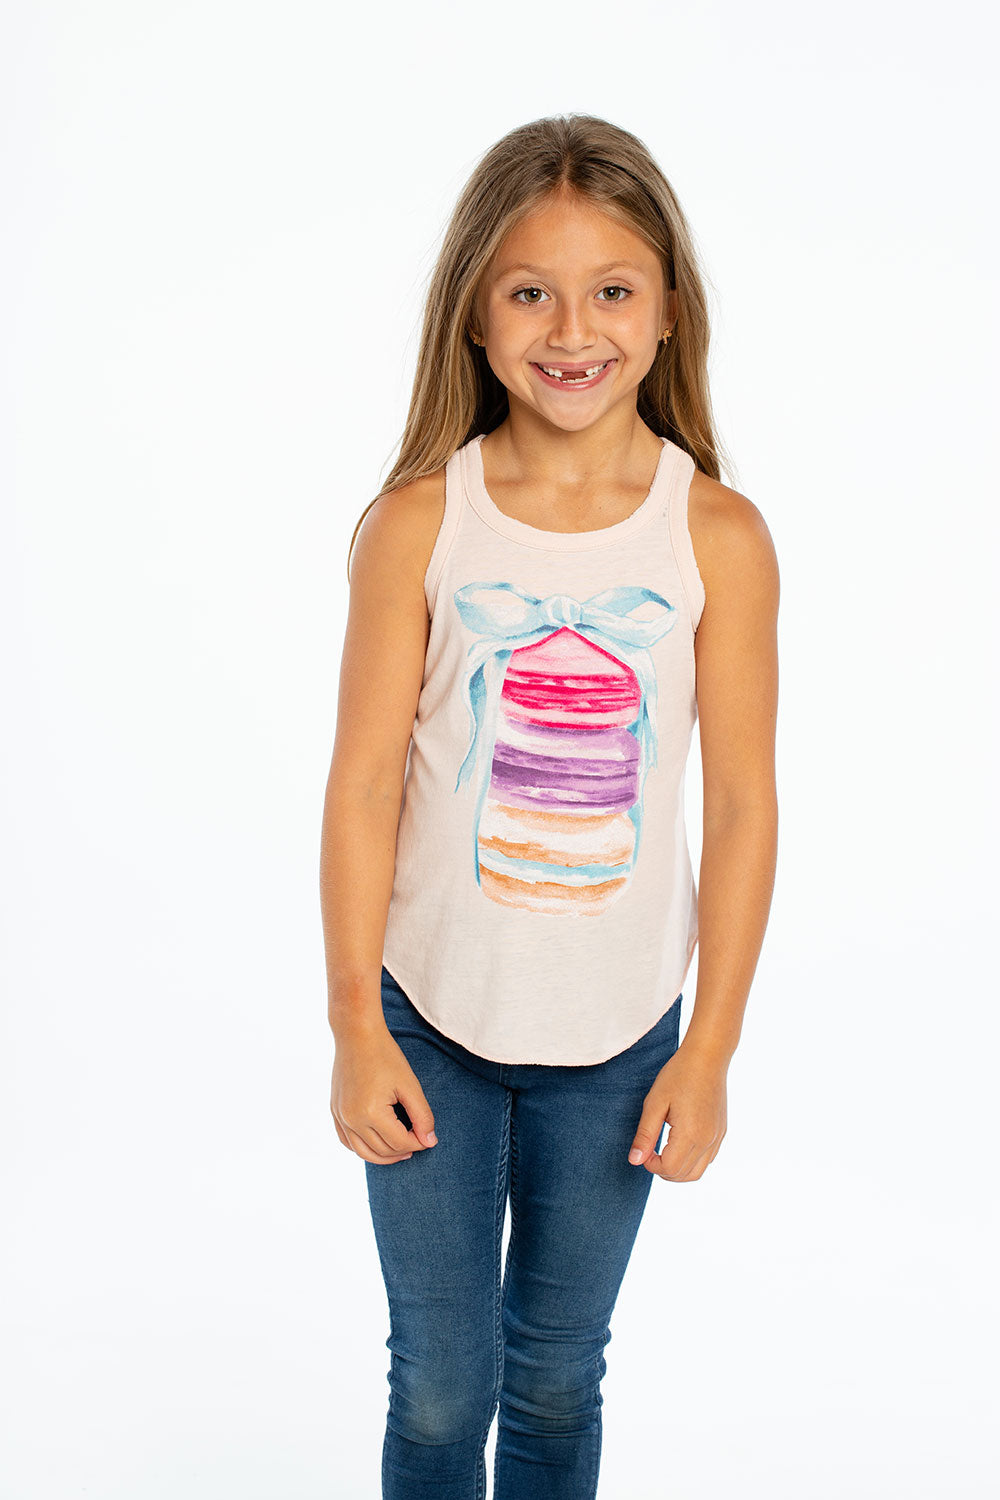 Petit Macaroons GIRLS chaserbrand4.myshopify.com